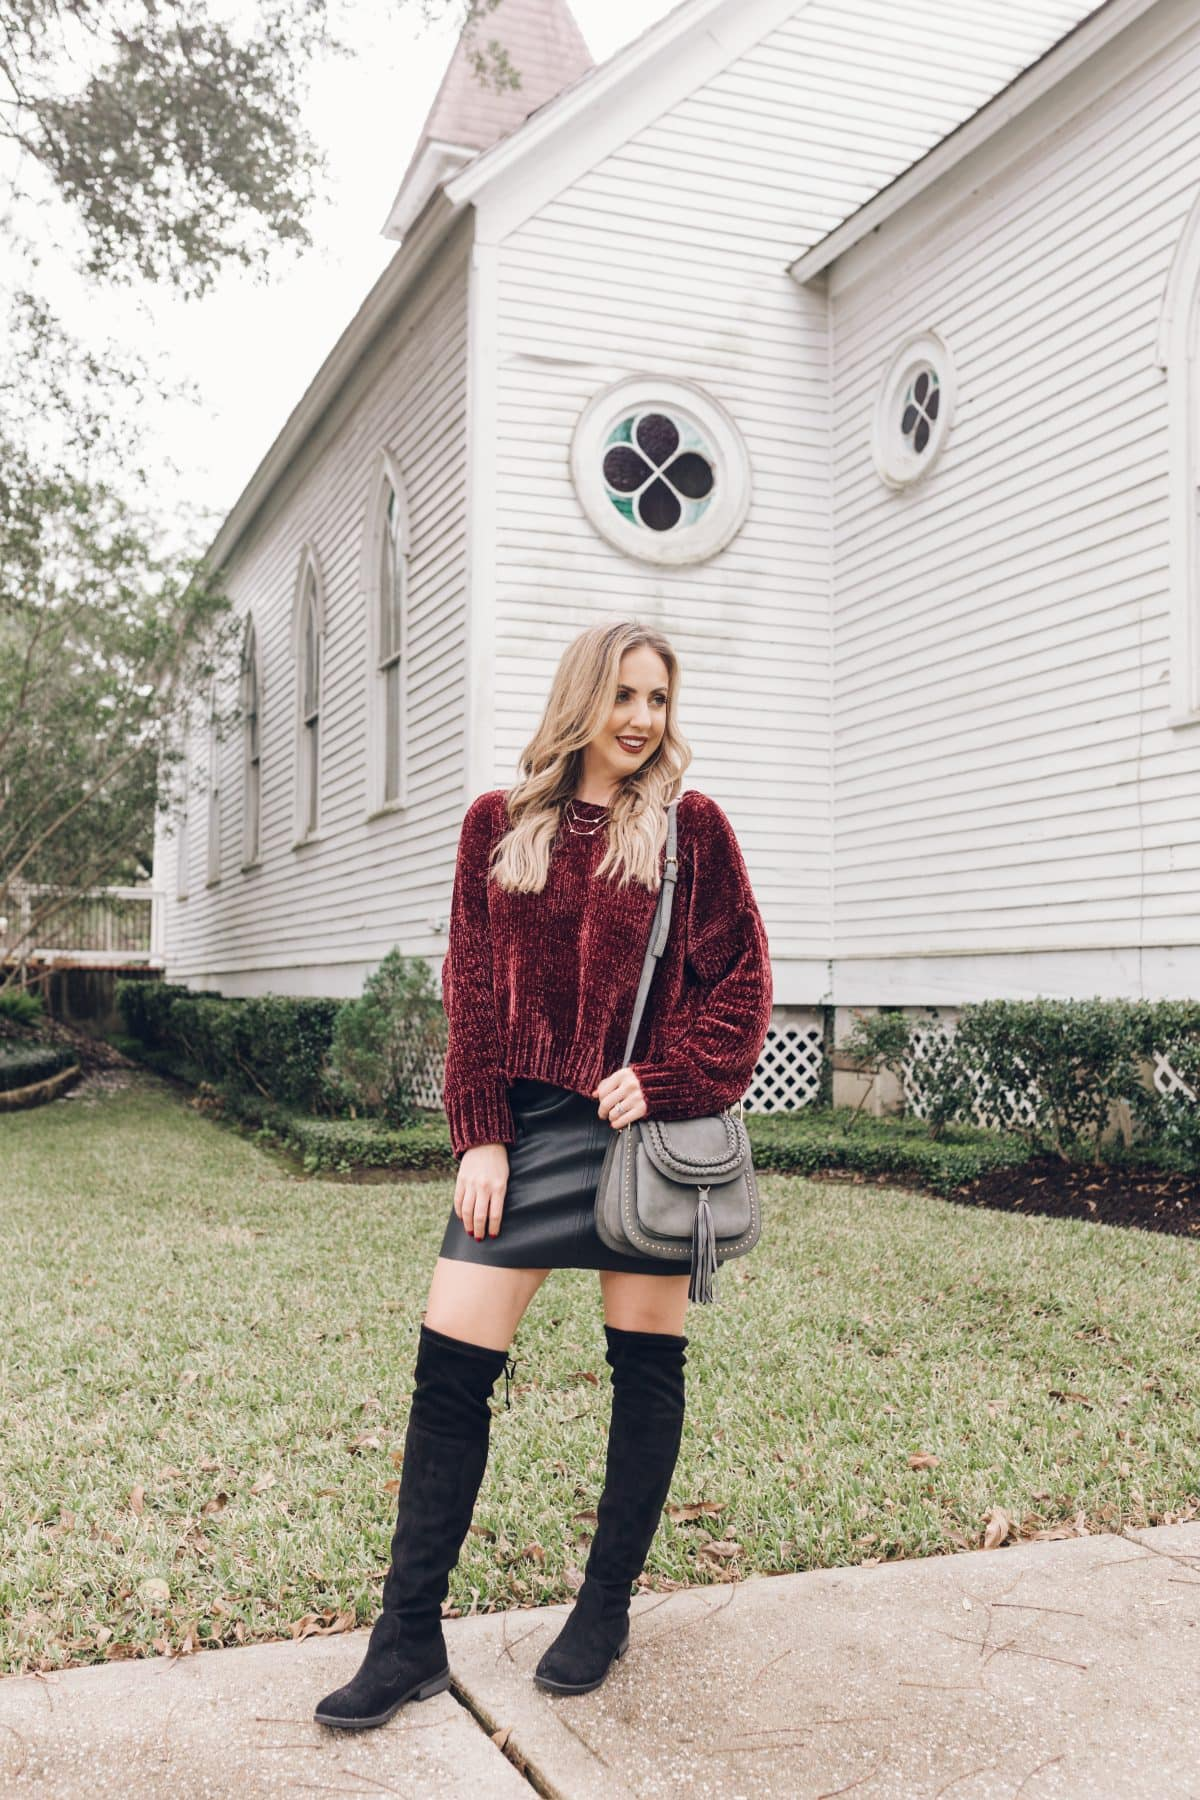 Houston lifestyle blogger Meg O. on the Go shares a holiday outfit that includes a chenille sweater, faux leather skirt, and over the knee boots - all from Evereve